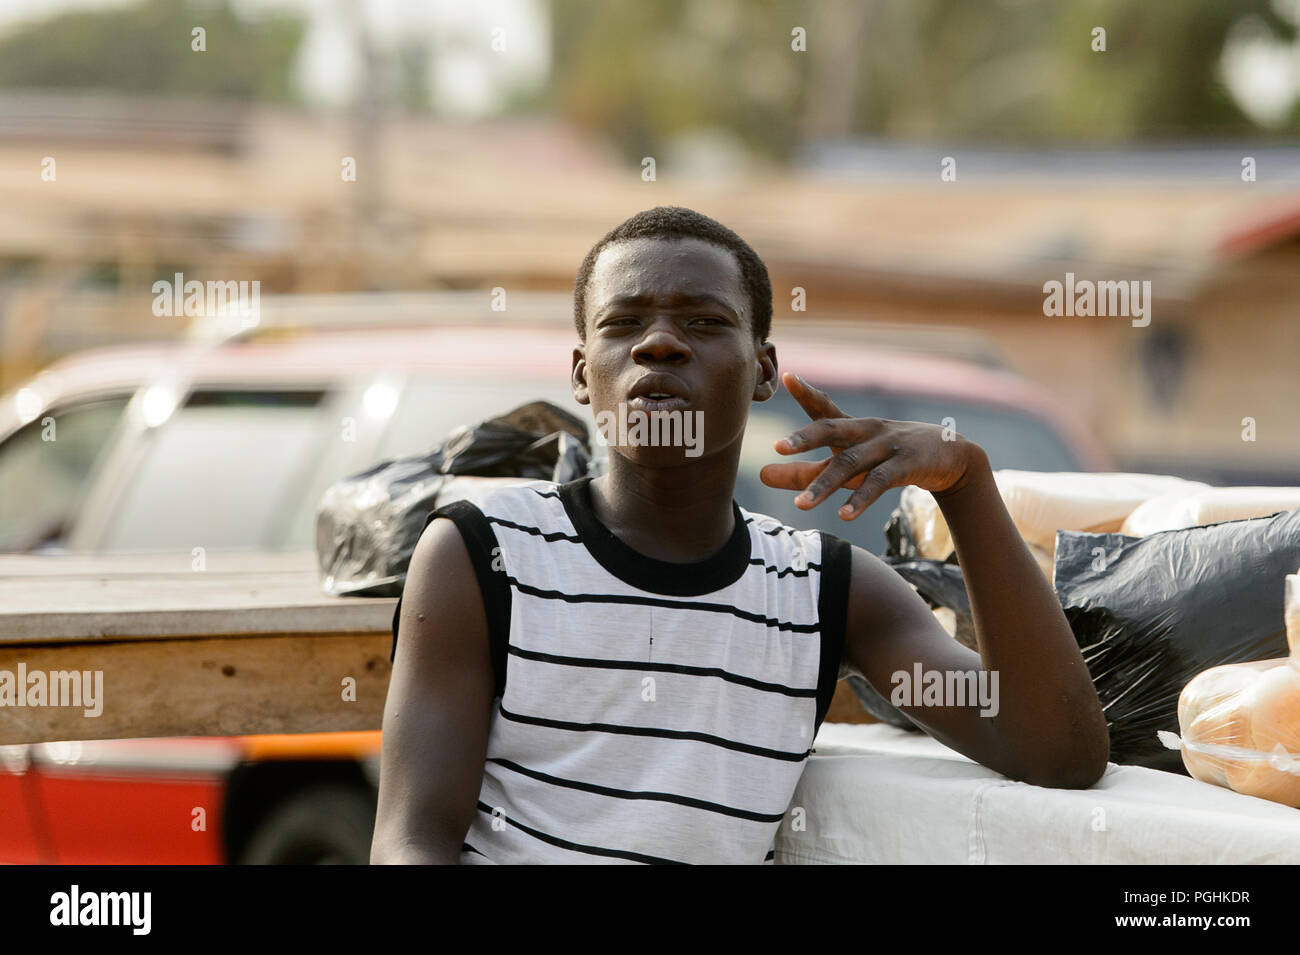 ACCRA, GHANA - Jan 8, 2017: Unidentified Ghanaian man tries to say something on the street. People of Ghana suffer of poverty due to the economic situ - Stock Image